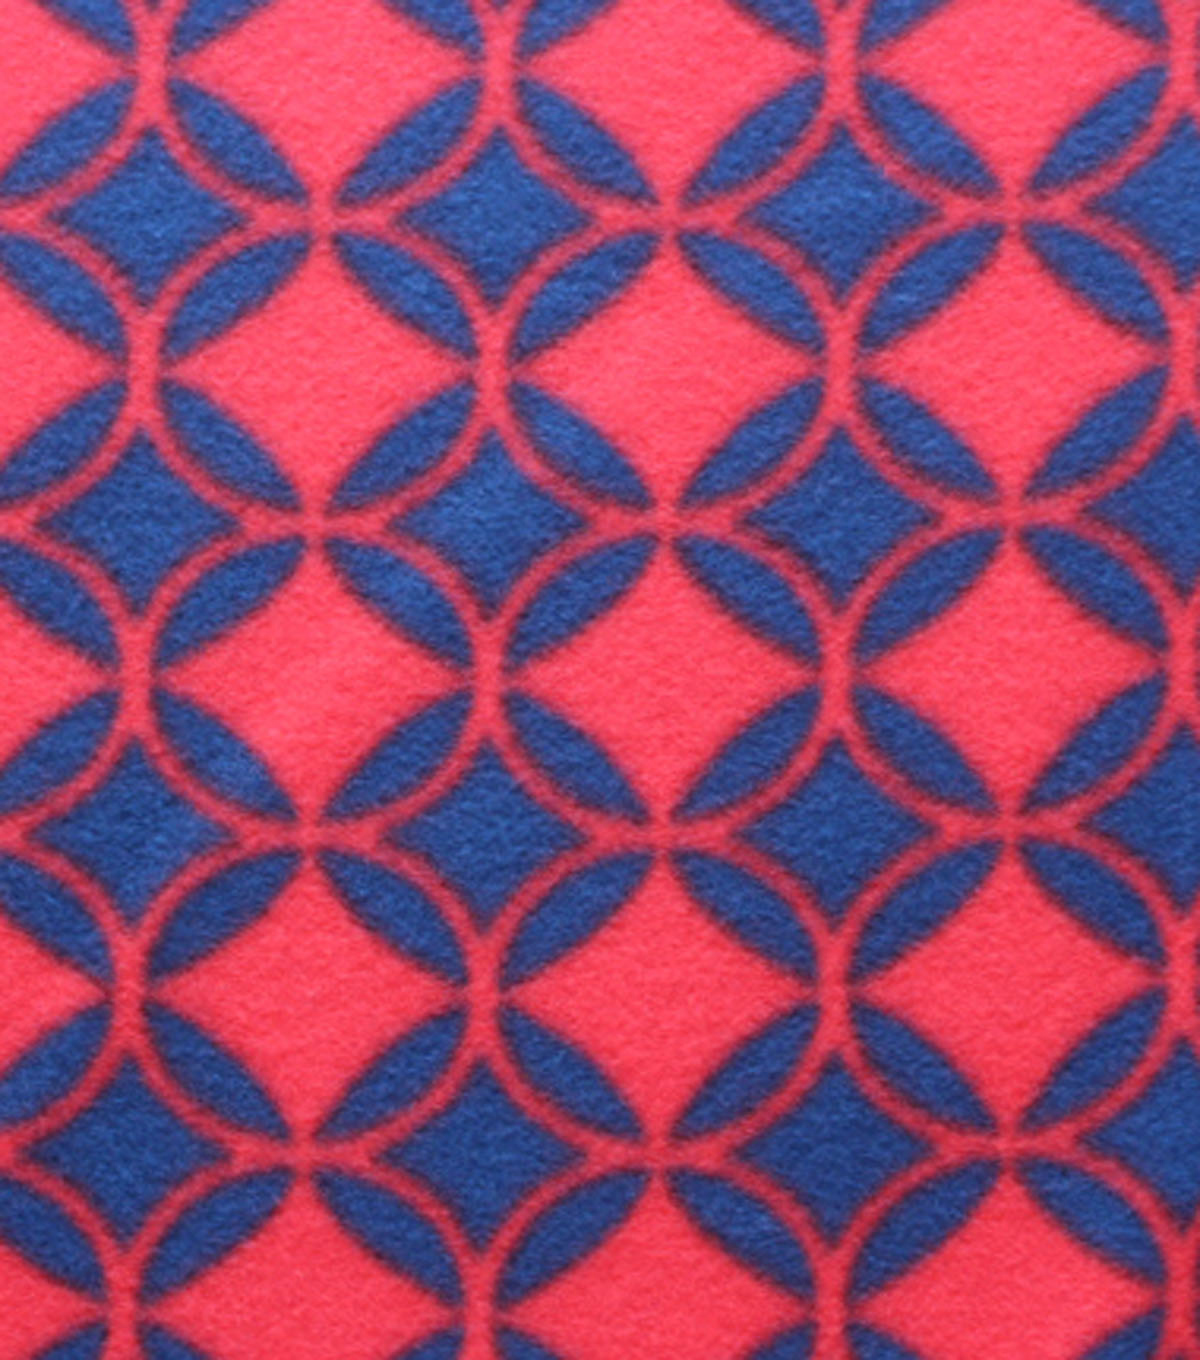 Blizzard Fleece Fabric - Navy Red Diamonds